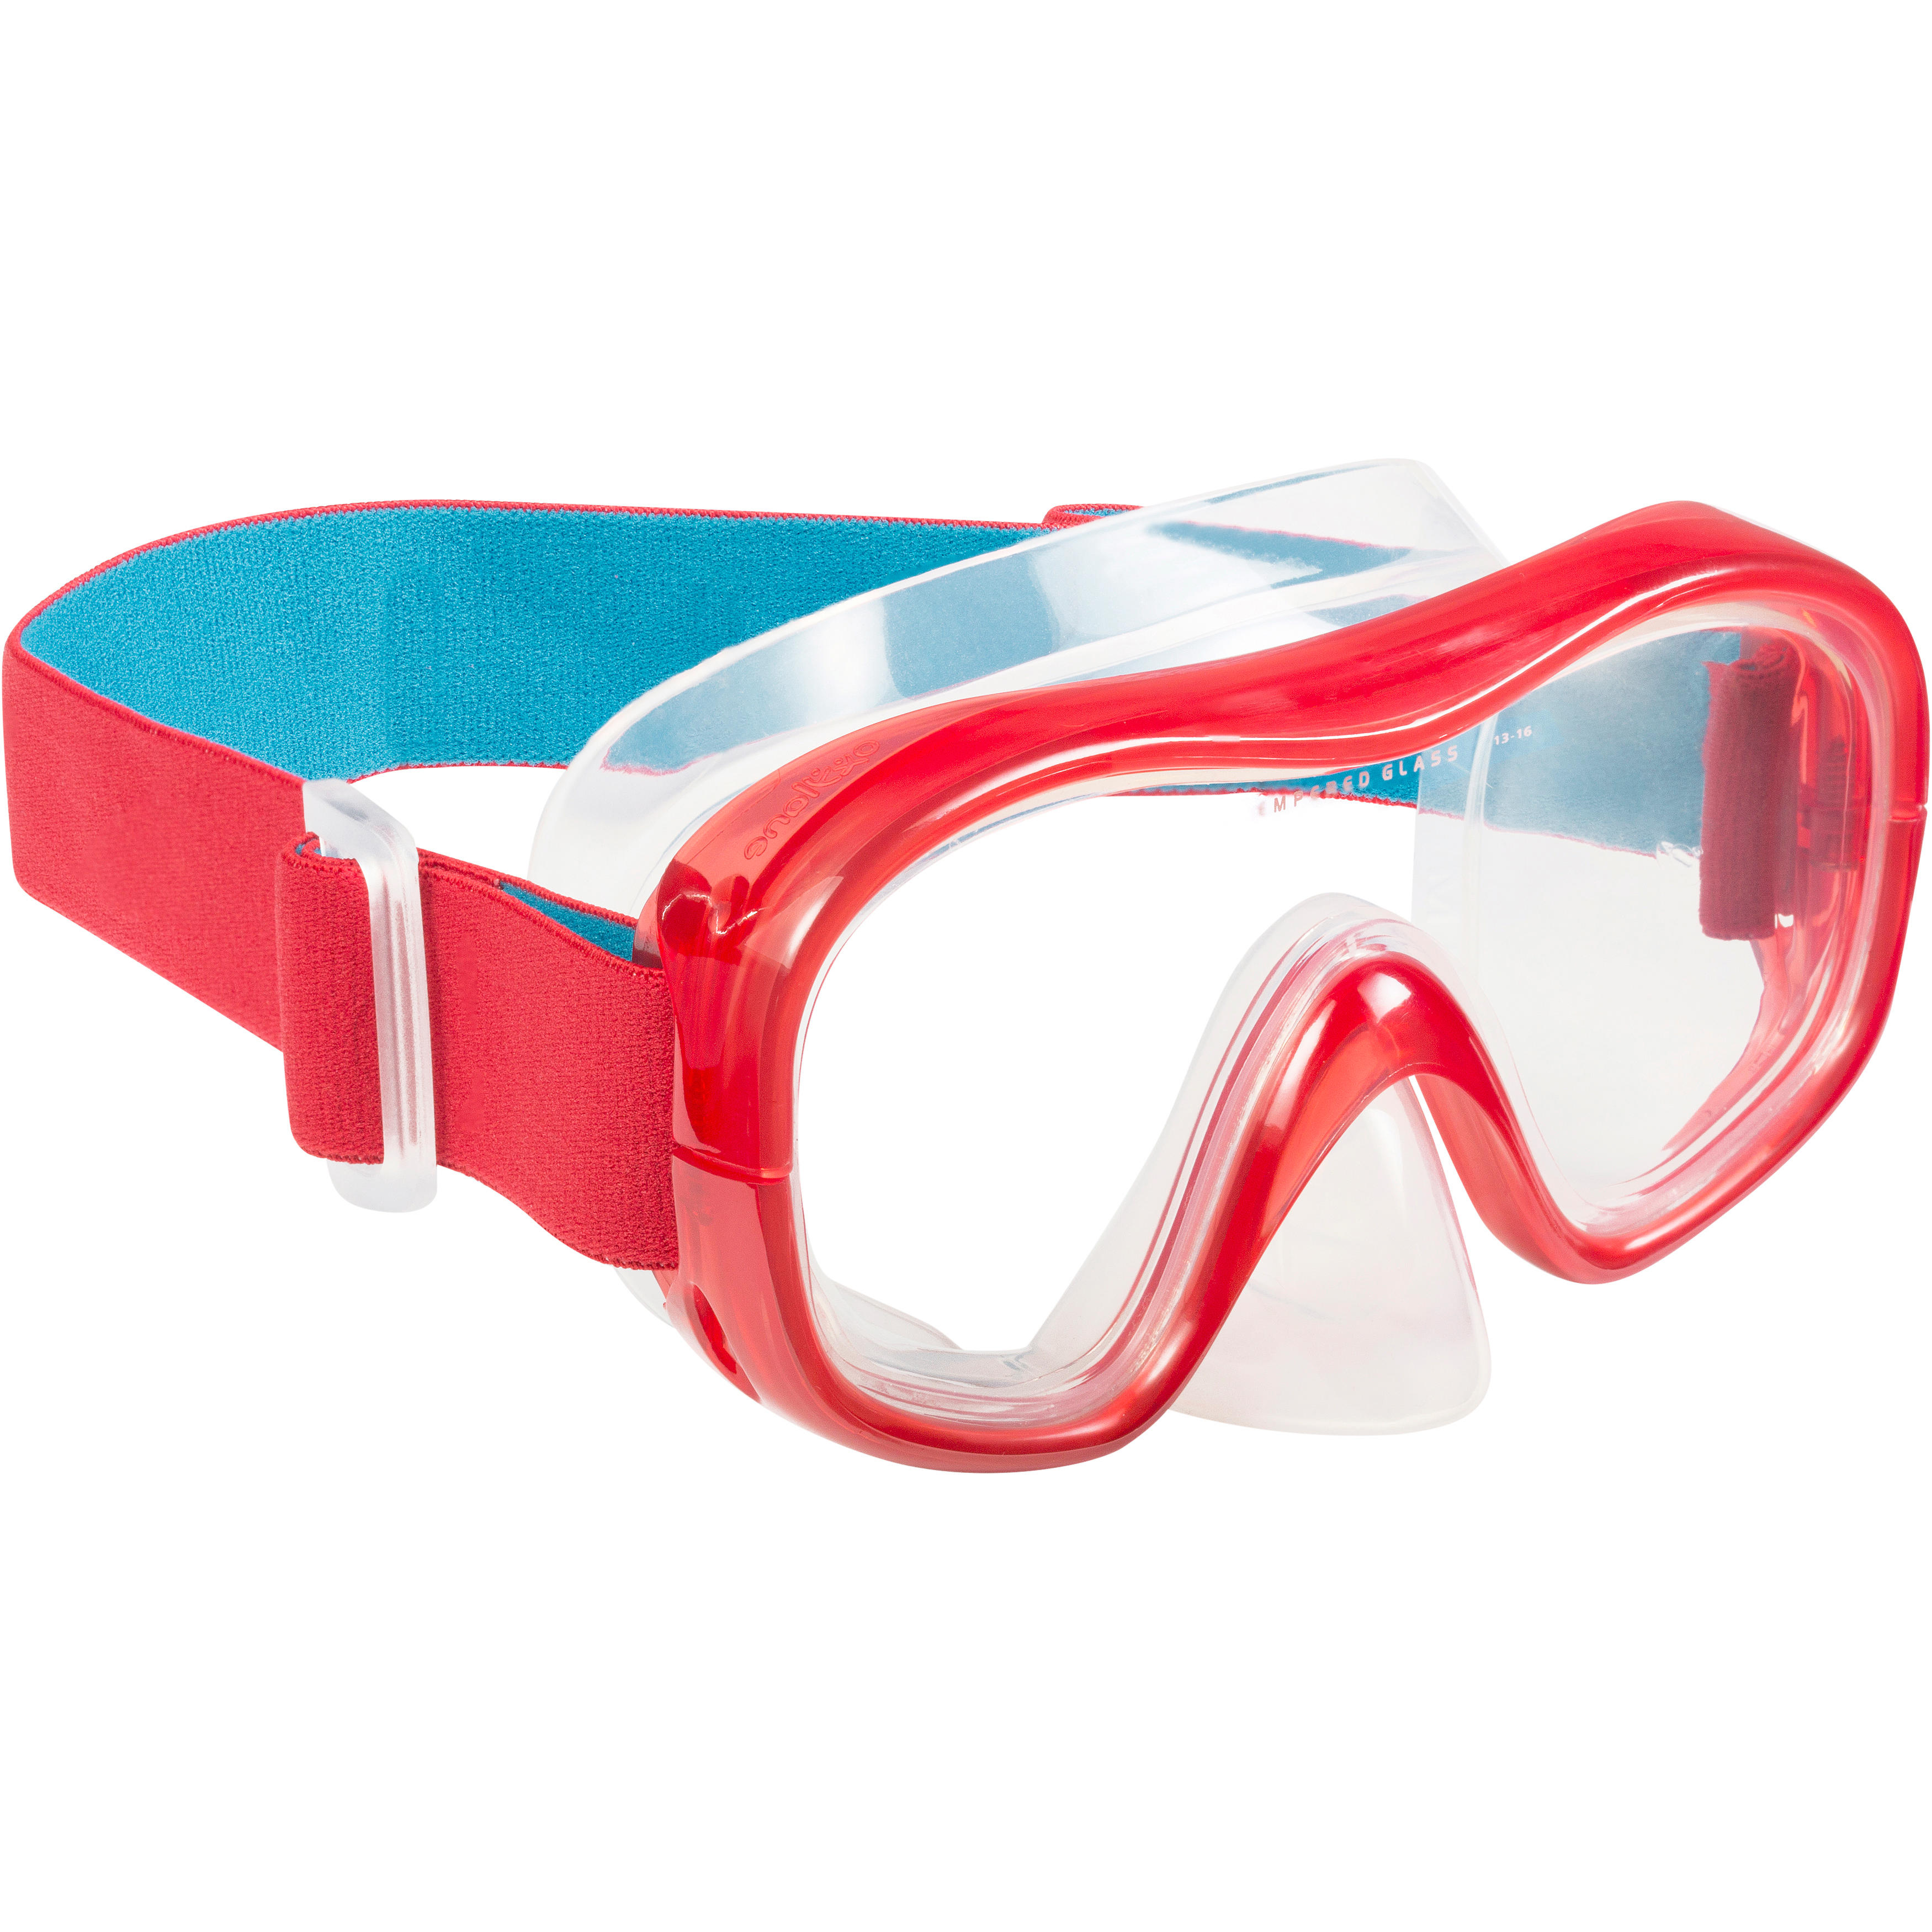 520 Snorkelling Mask - Red Turquoise